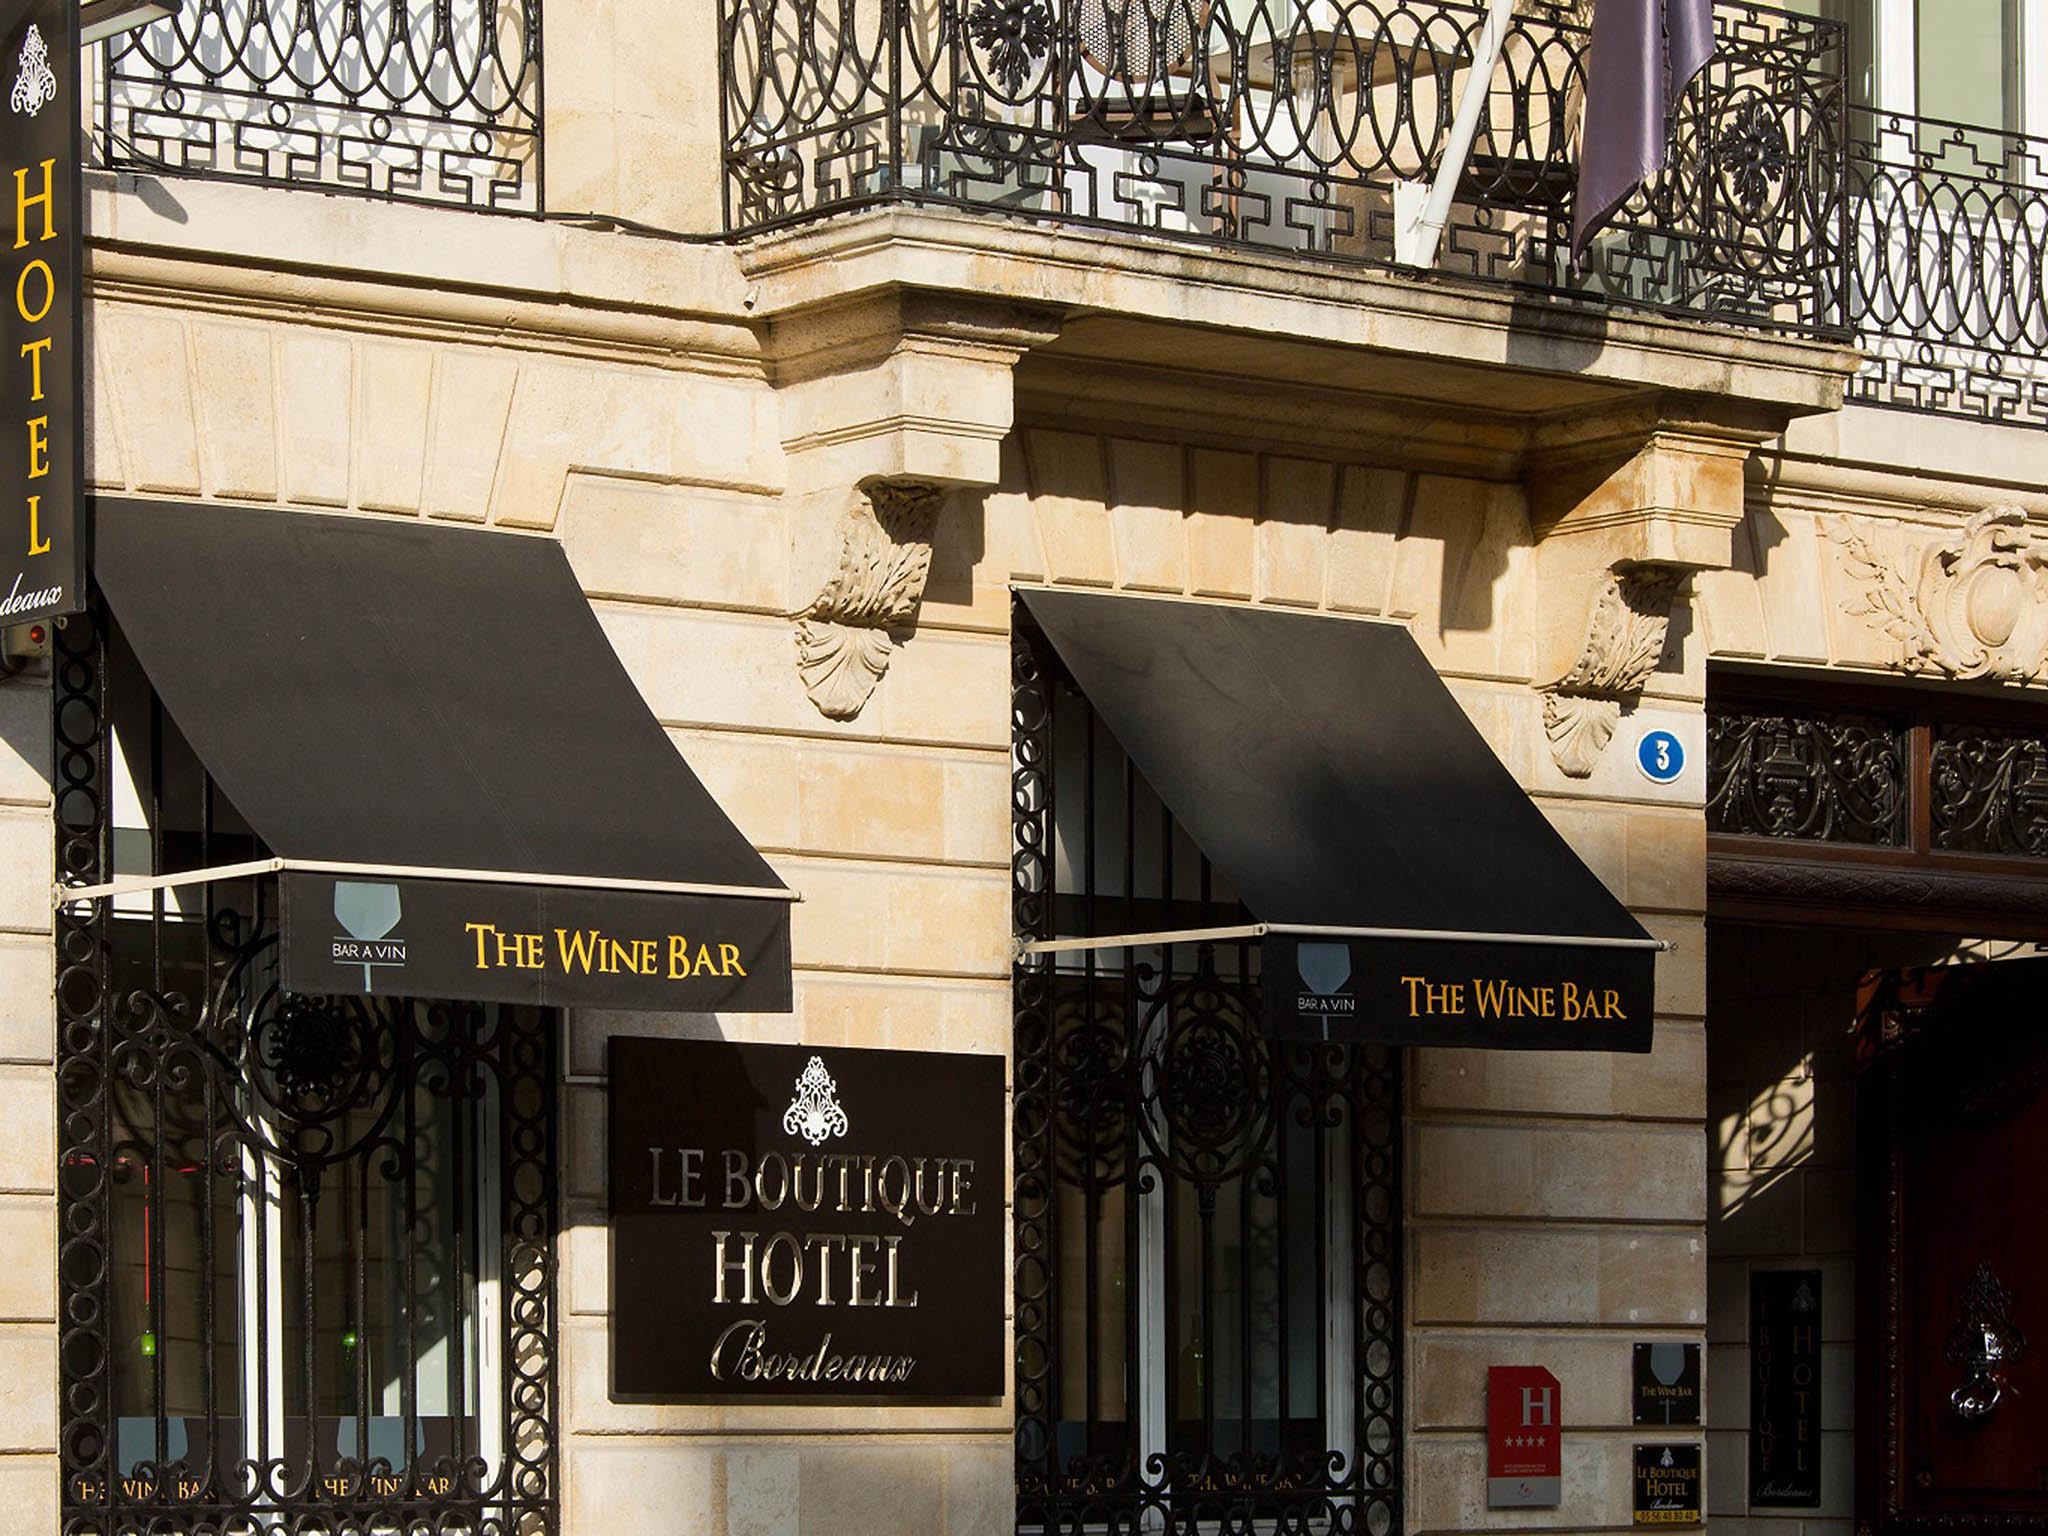 Hotel in bordeaux le boutique hotel bordeaux for Boutique hotel bordeau